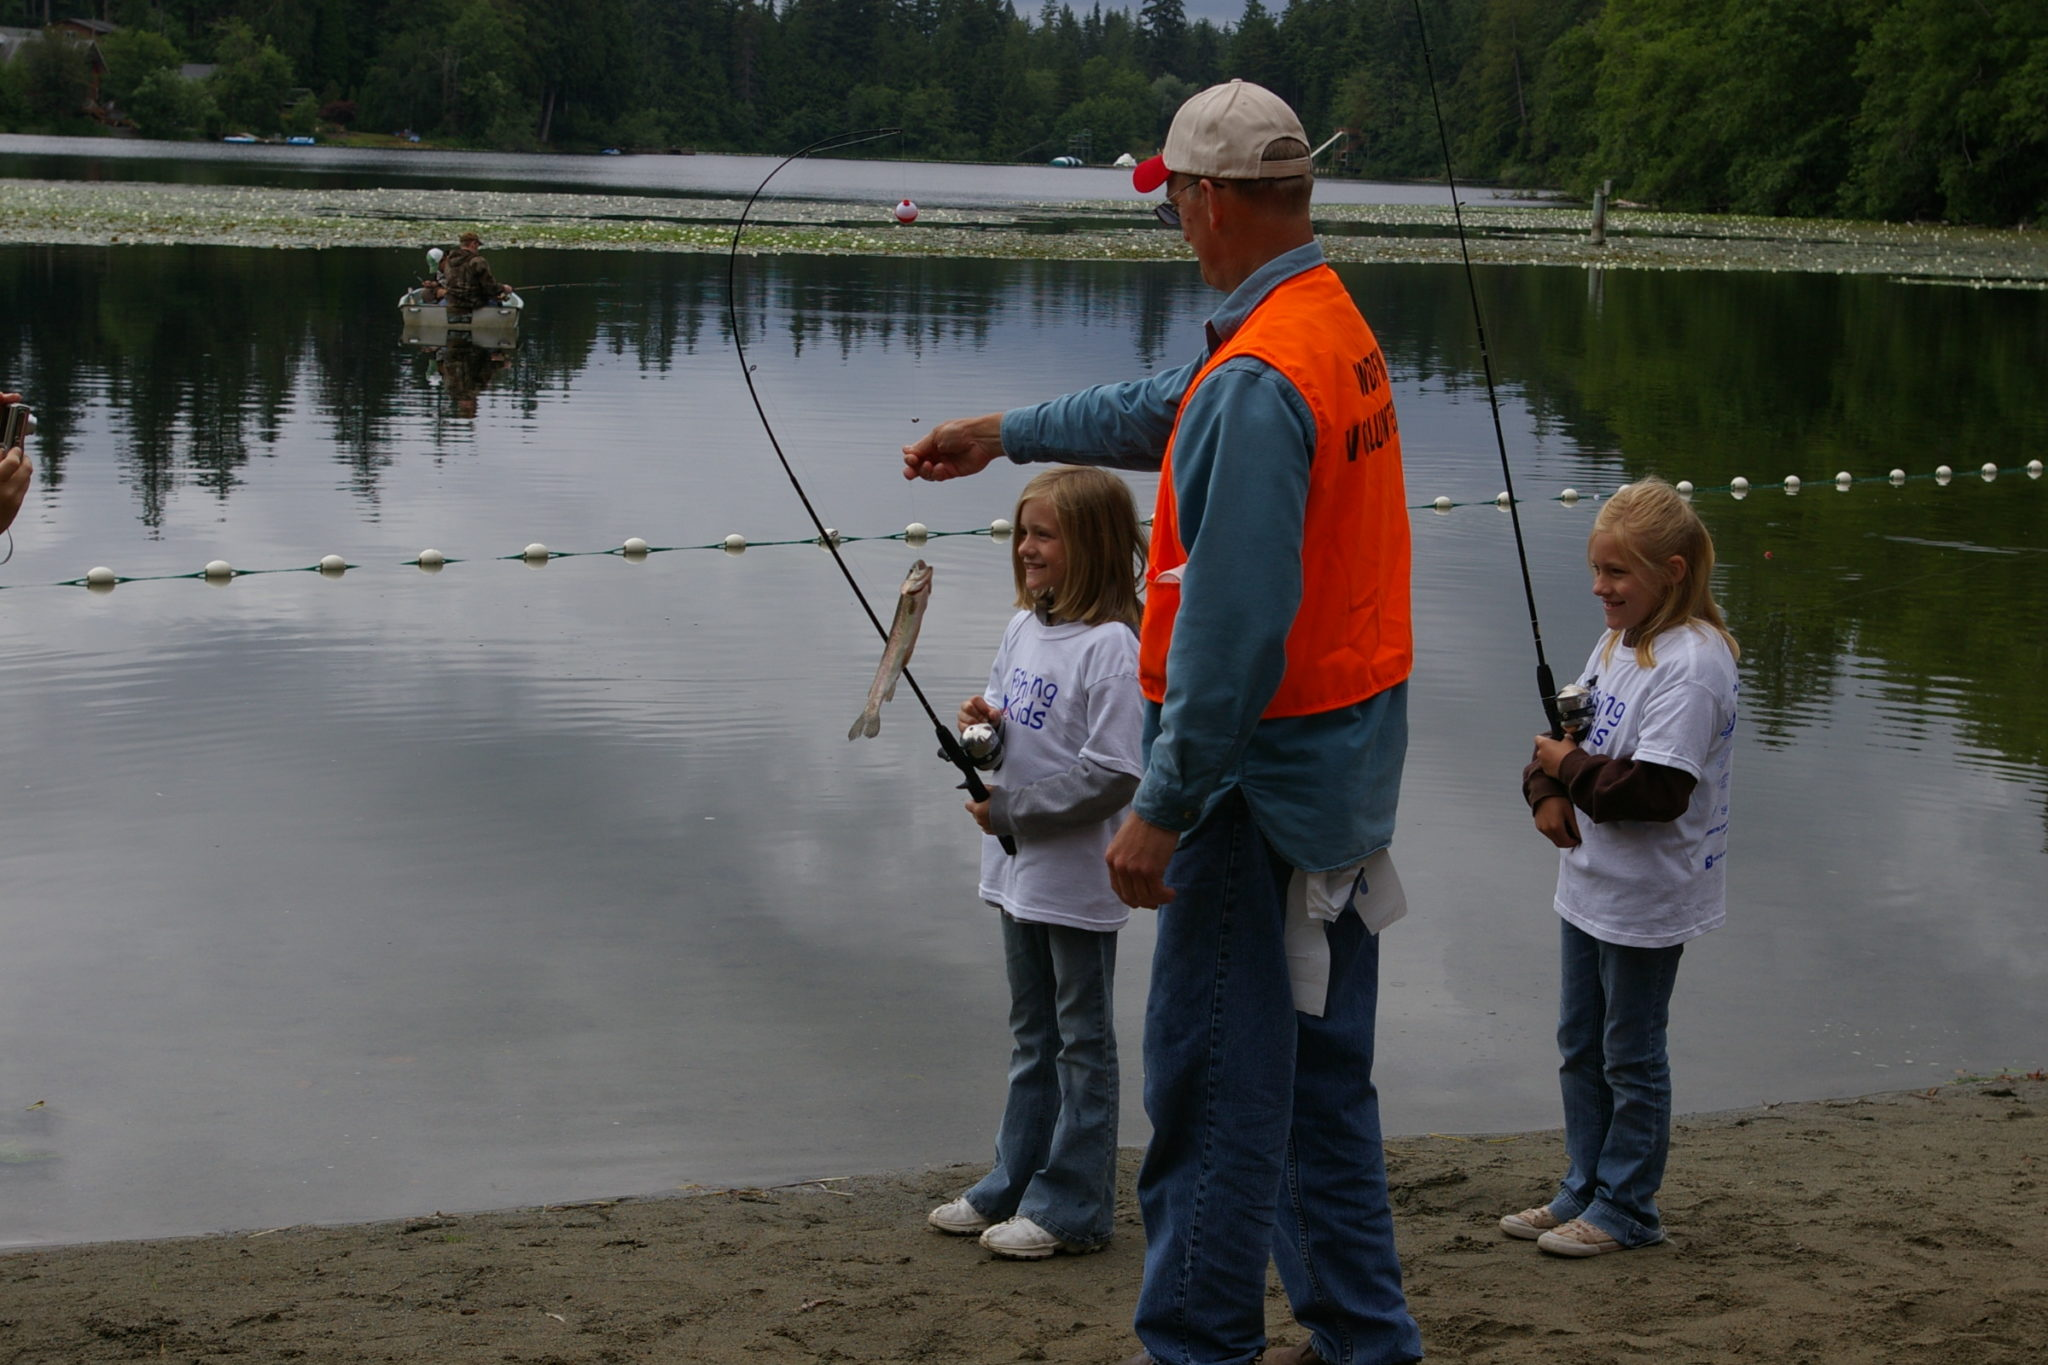 Fishing Kids – Idylwood Park (Lake Sammamish)